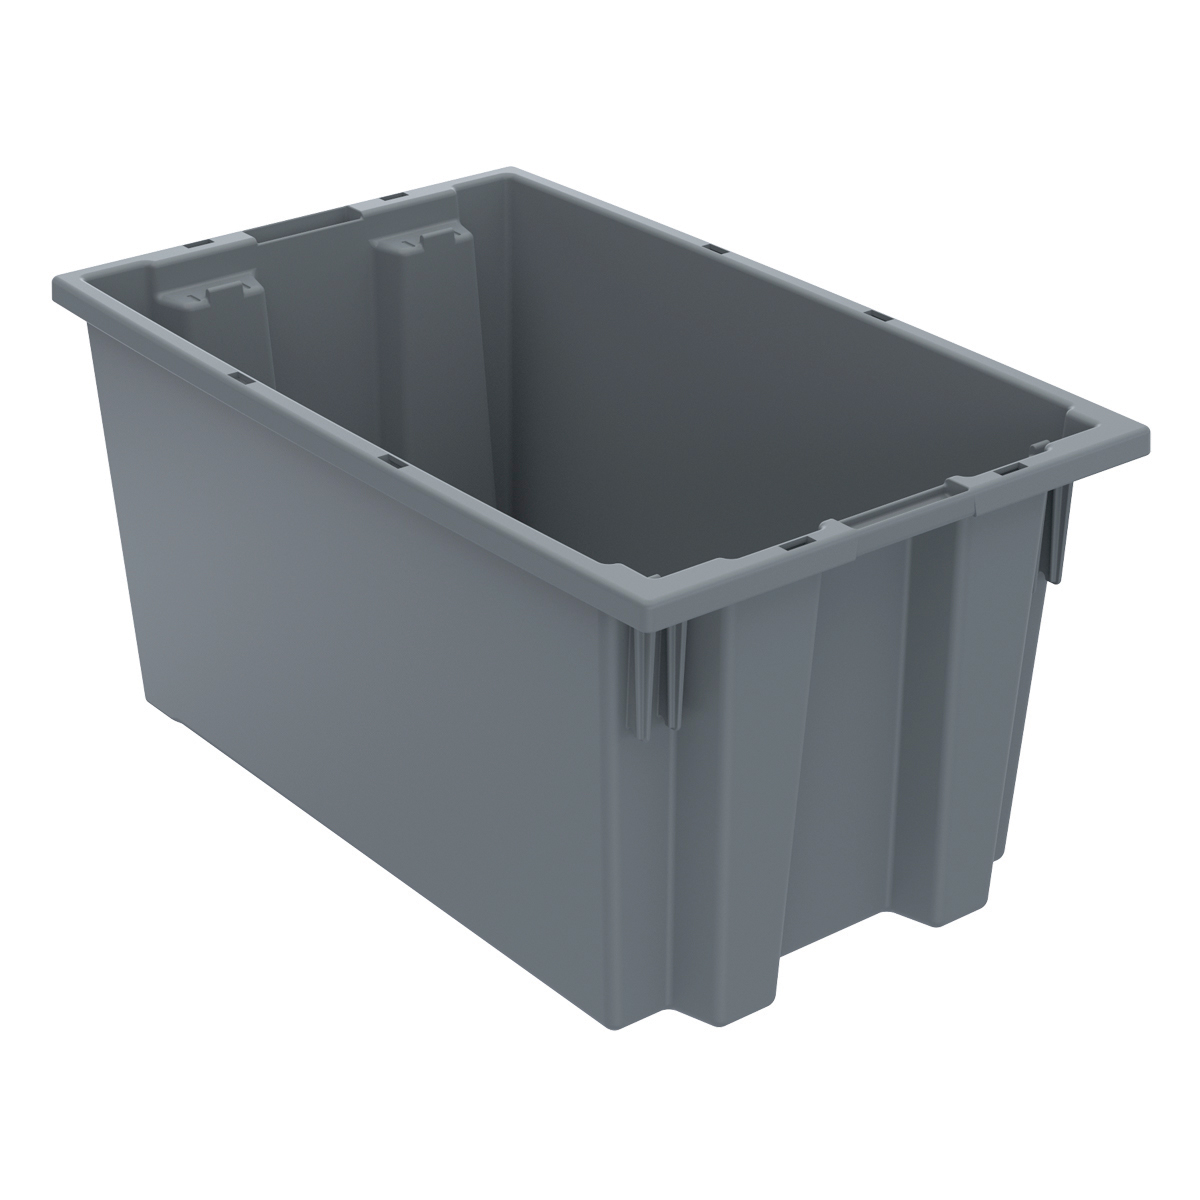 Nest & Stack Tote 18 x 11, 9, Gray (35185GREY).  This item sold in carton quantities of 6.